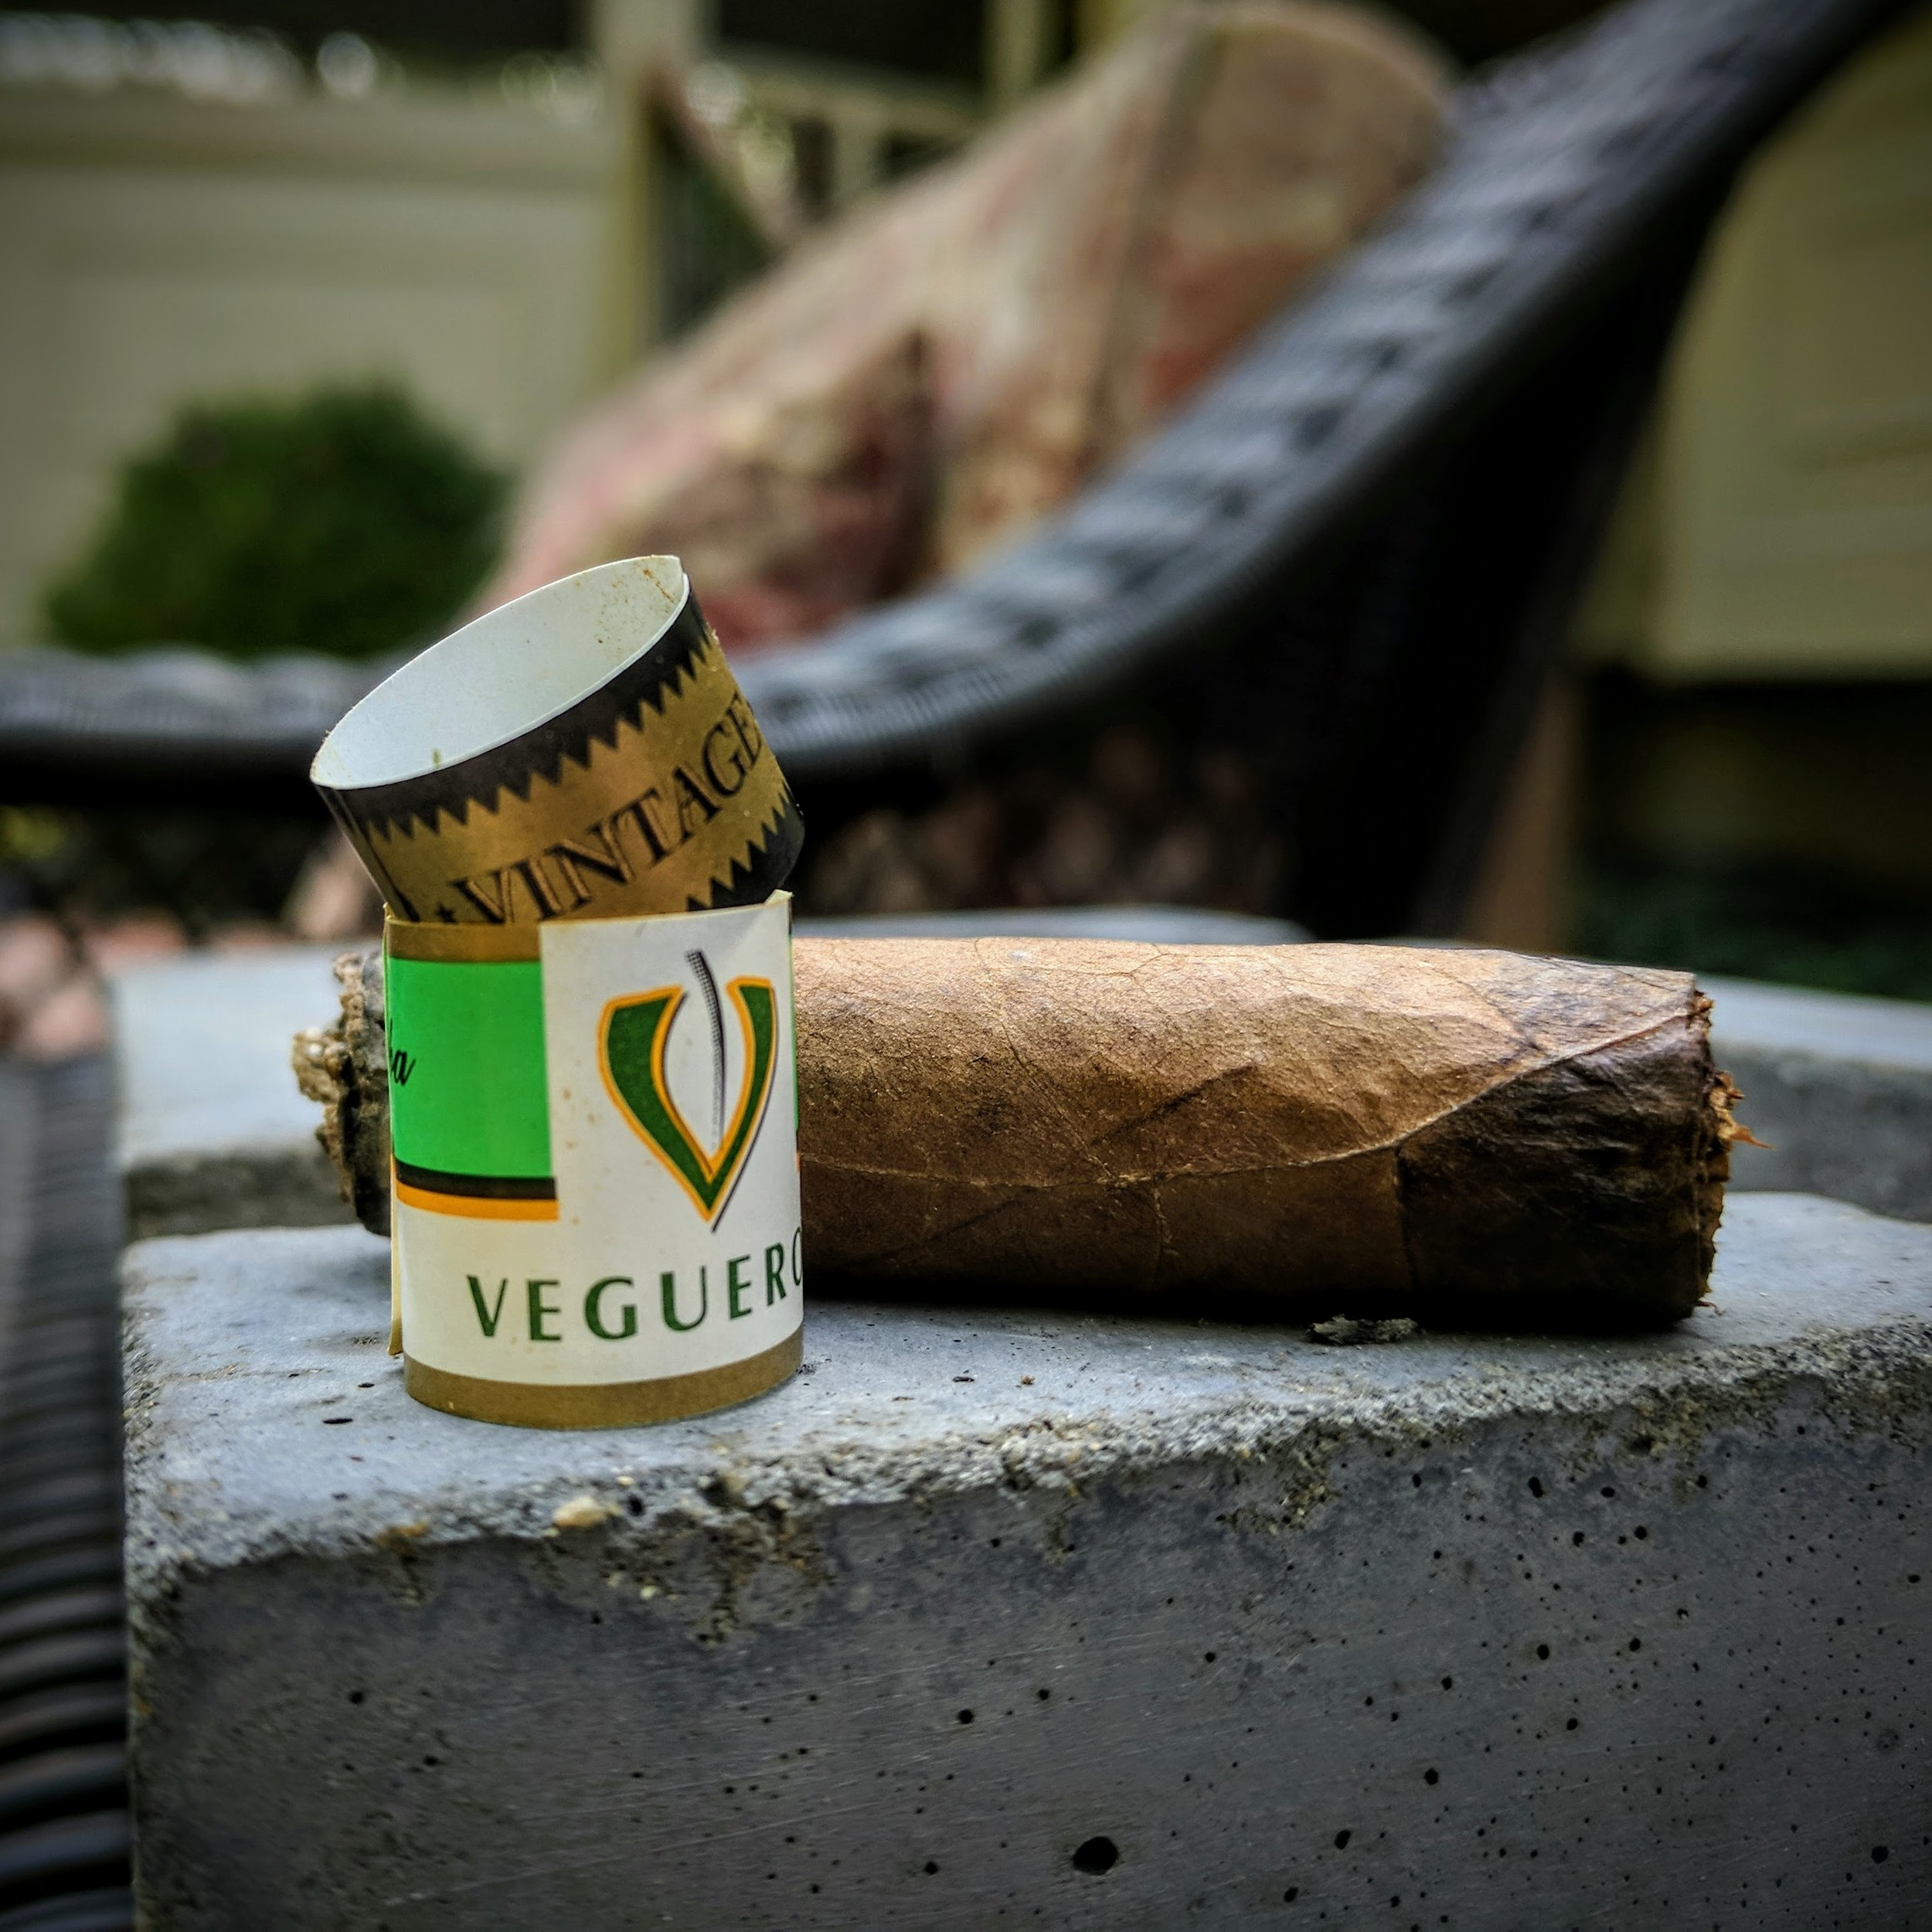 Smoke 'em if you've got 'em.  like right now ... - Rating:  6.3  /  10.0The Vegueros Especiales No. 1 was a frustrating cigar to smoke.  The draw impaired the flavors in that I needed to remove a significant amount of filler to make the cigar smokeable.  In the final third, it really started to shine and the flavors popped.Initally I thought the No. 1 was not past its prime, but I have to reconsider given the burn and draw issues encountered - I think the cigar's structure may be DIMINISHING and if you've got one, I'd light it up.  The flavors are holding up but the cigar may not be.